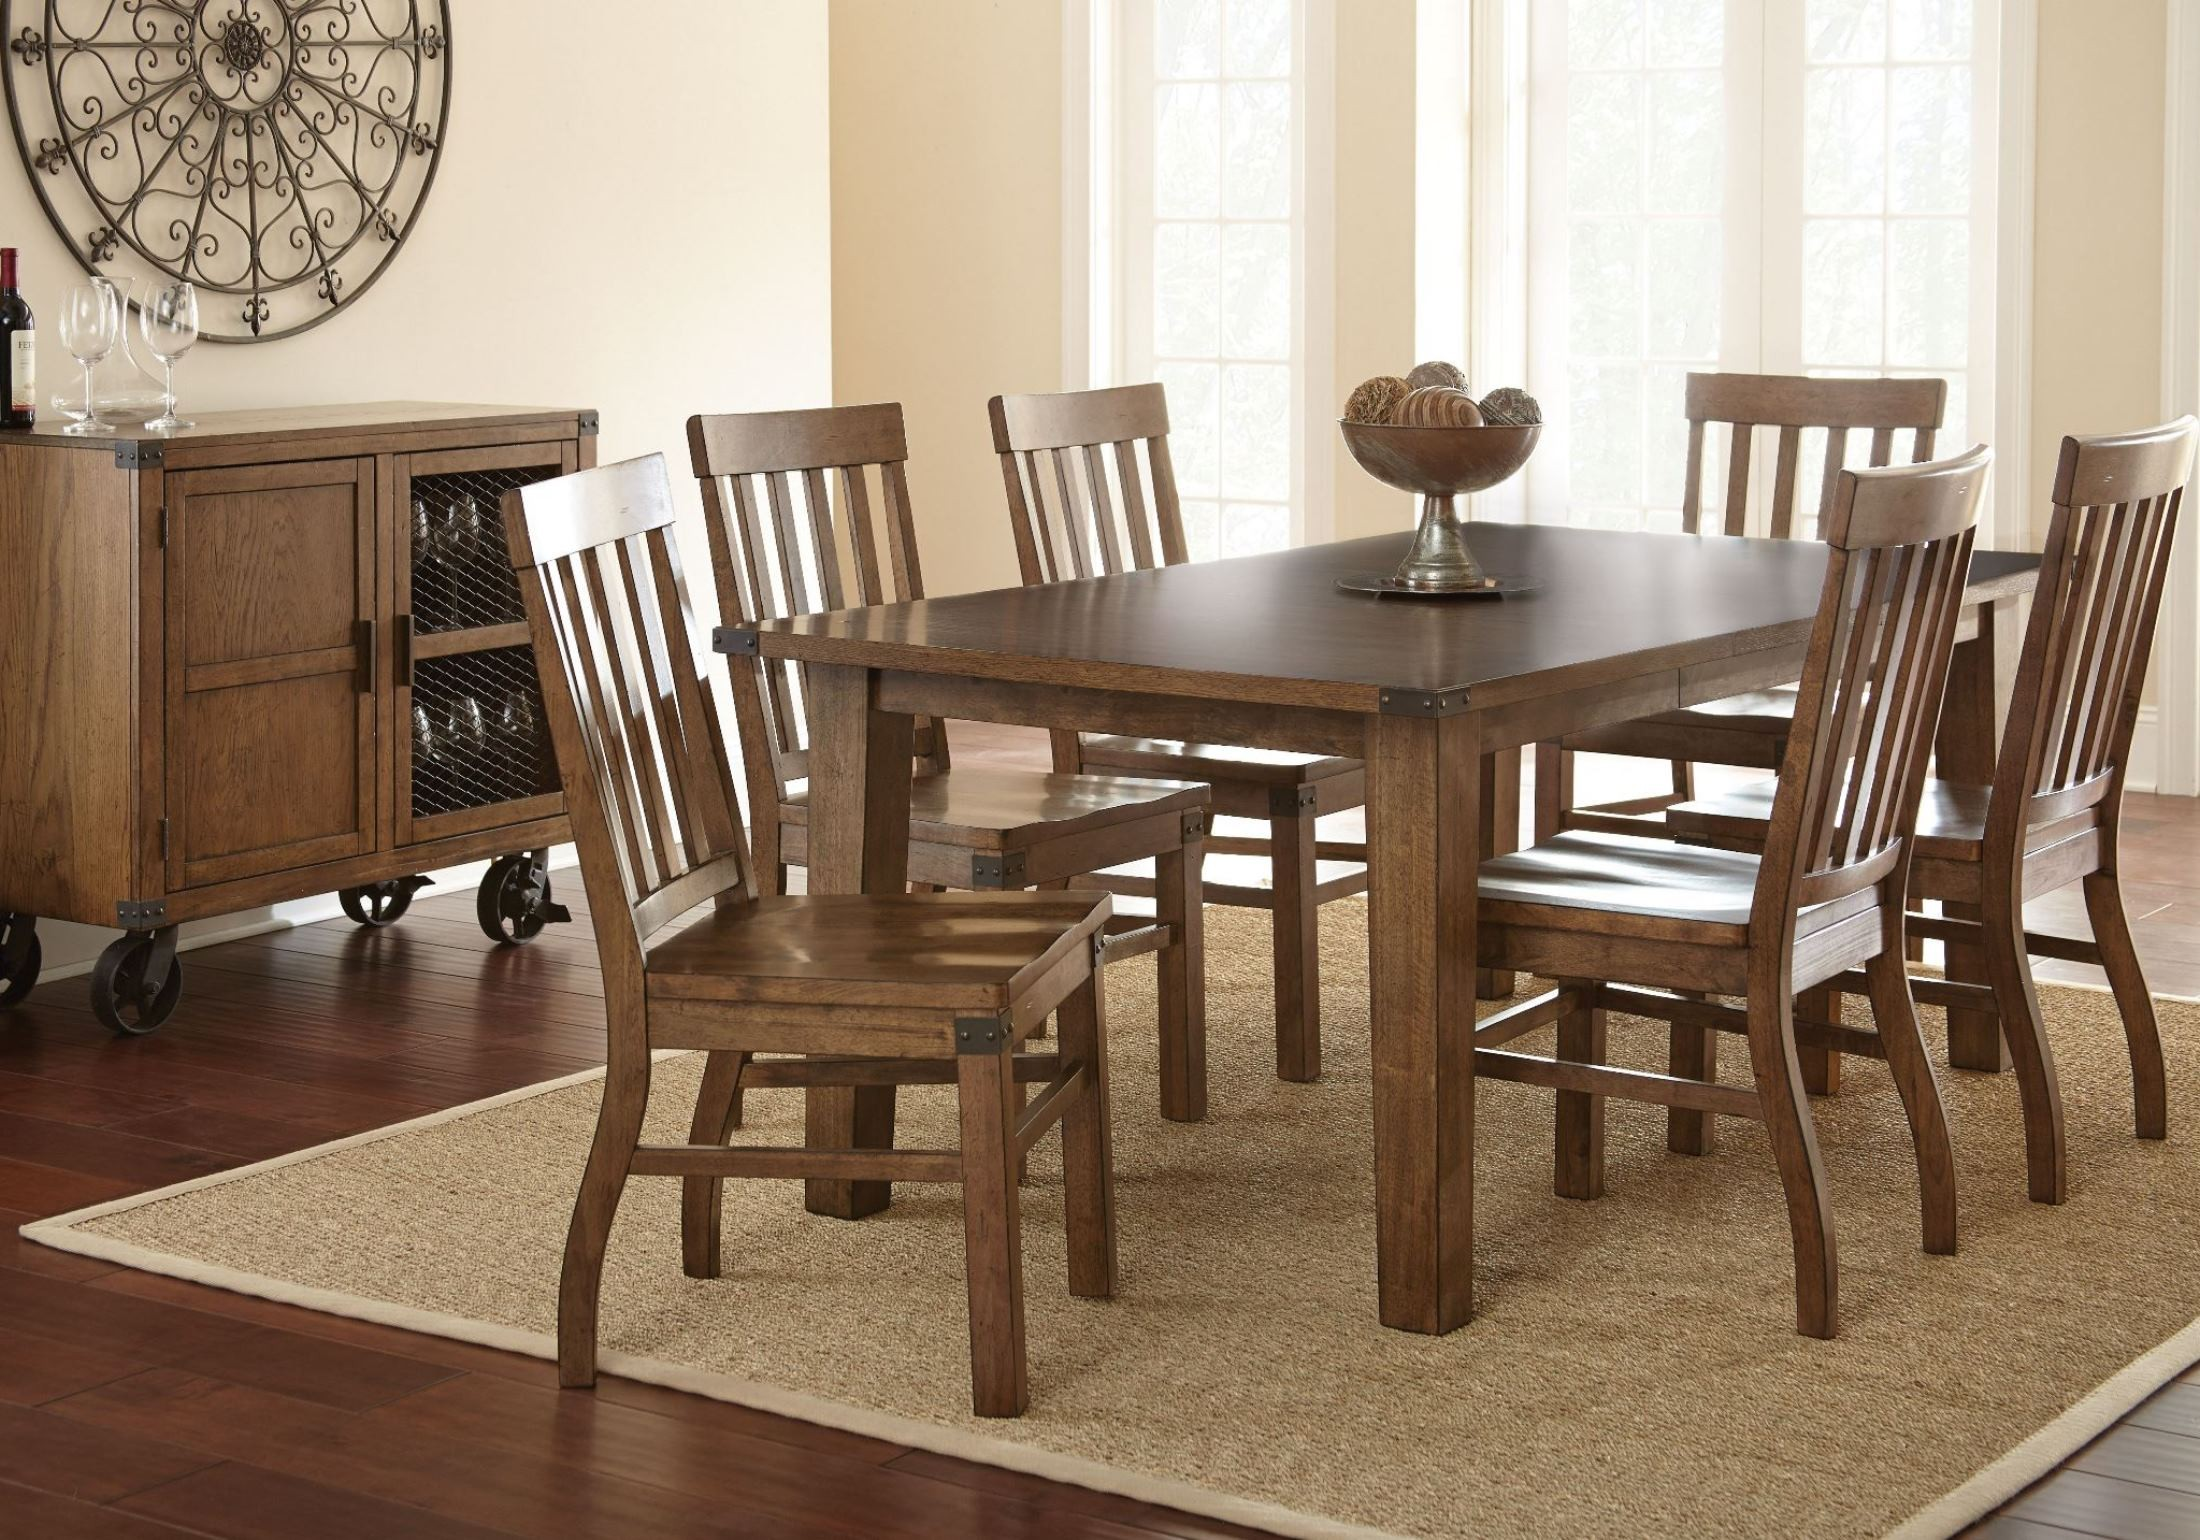 Hailee antique oak extendable rectangular dining room set for Pictures of antique dining room sets